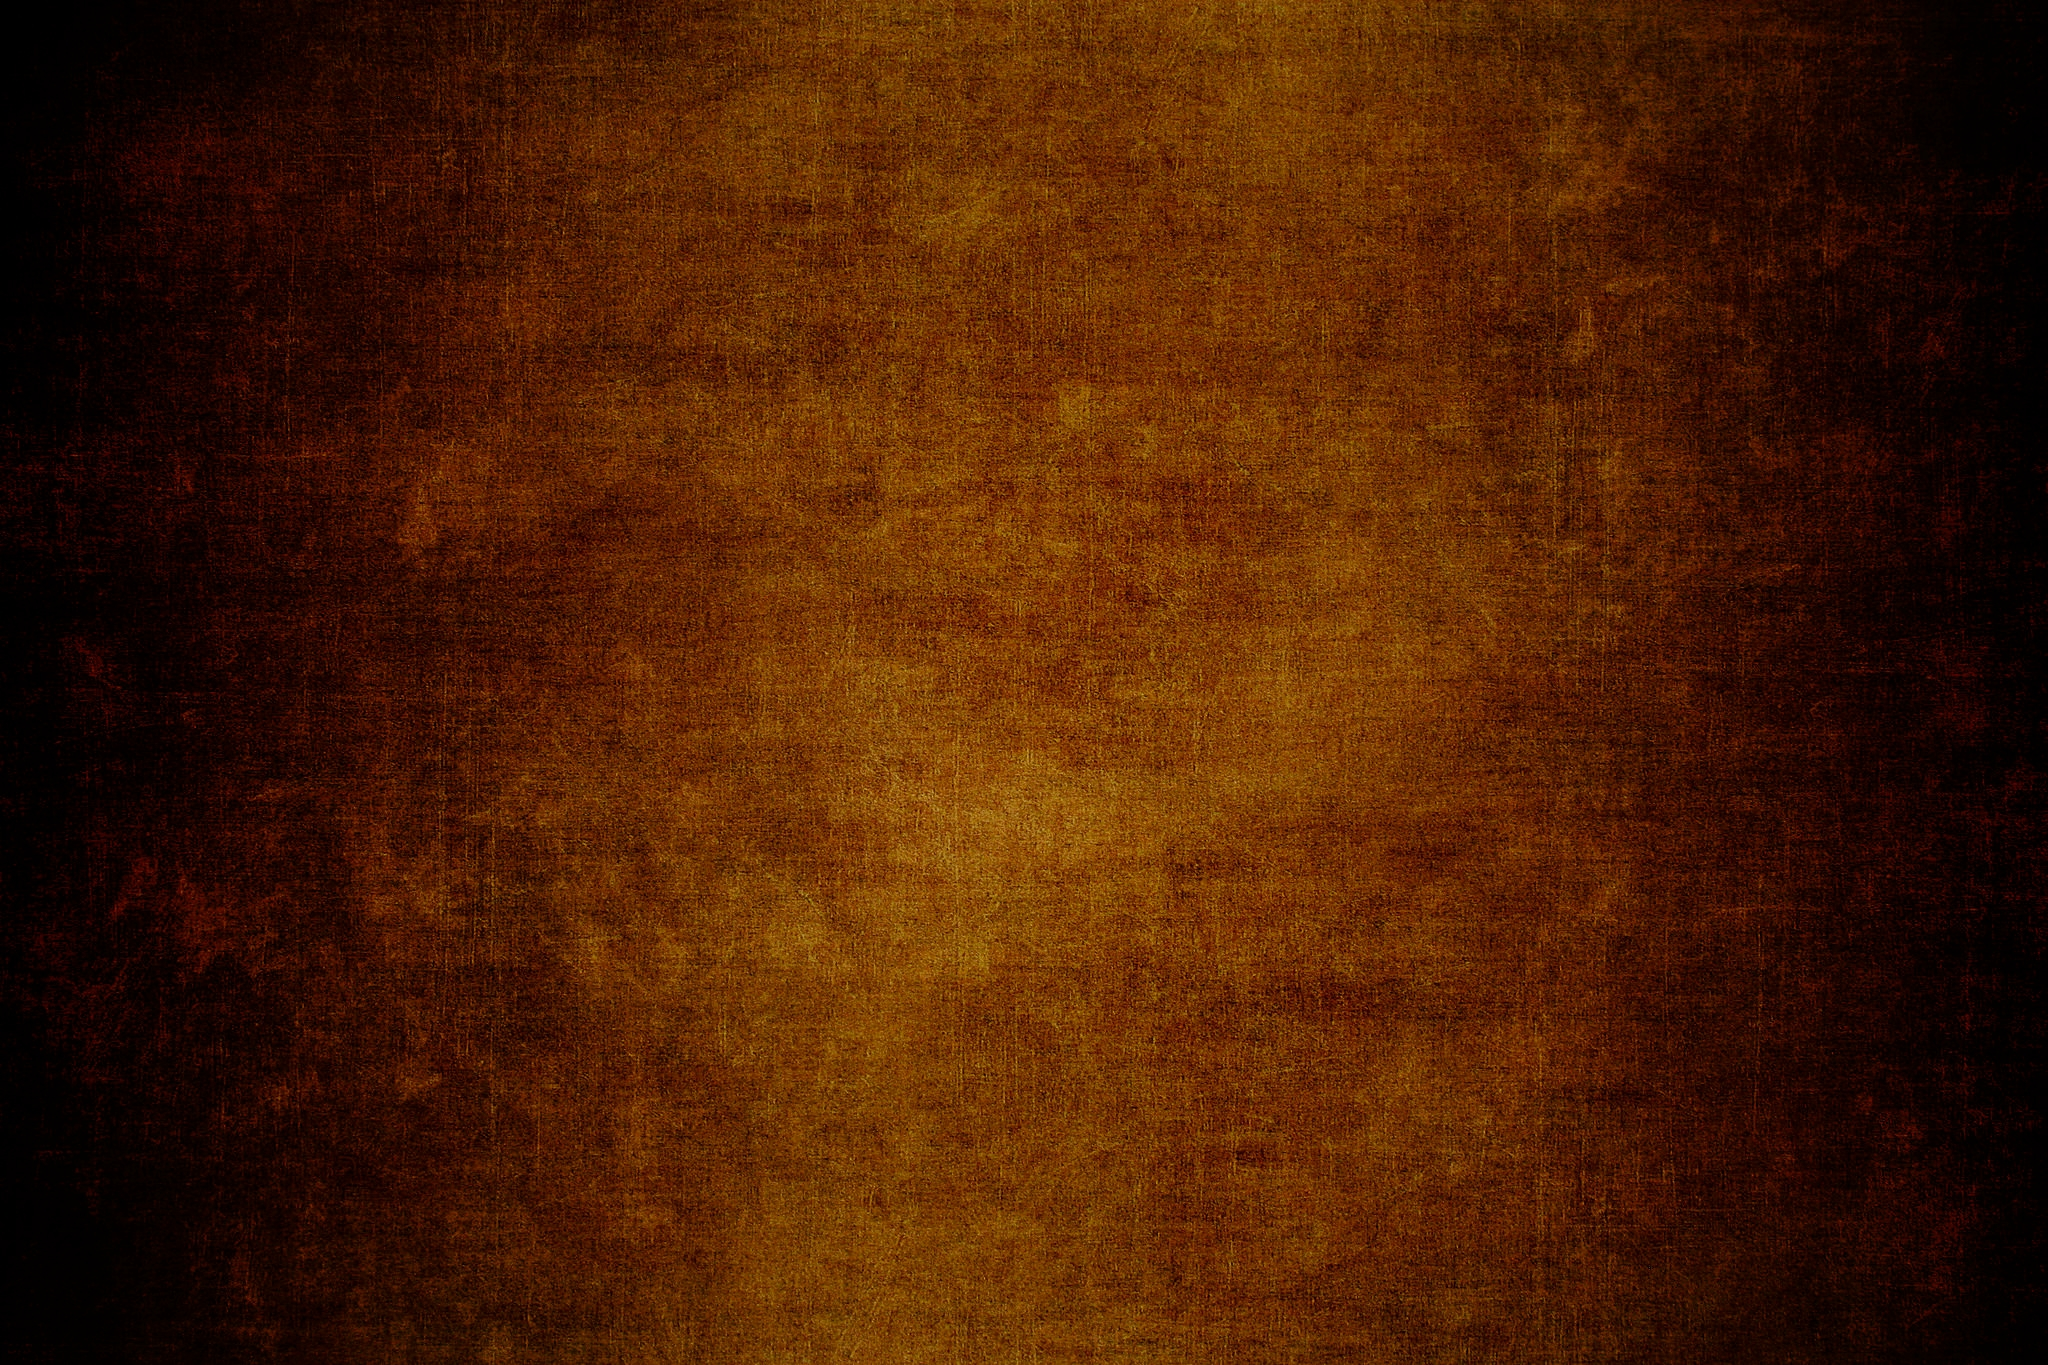 Simple Wallpaper Halloween Grunge - Abstract-Antique-Brown-Grunge-Background-Wallpaper-  Perfect Image Reference_44654.jpg